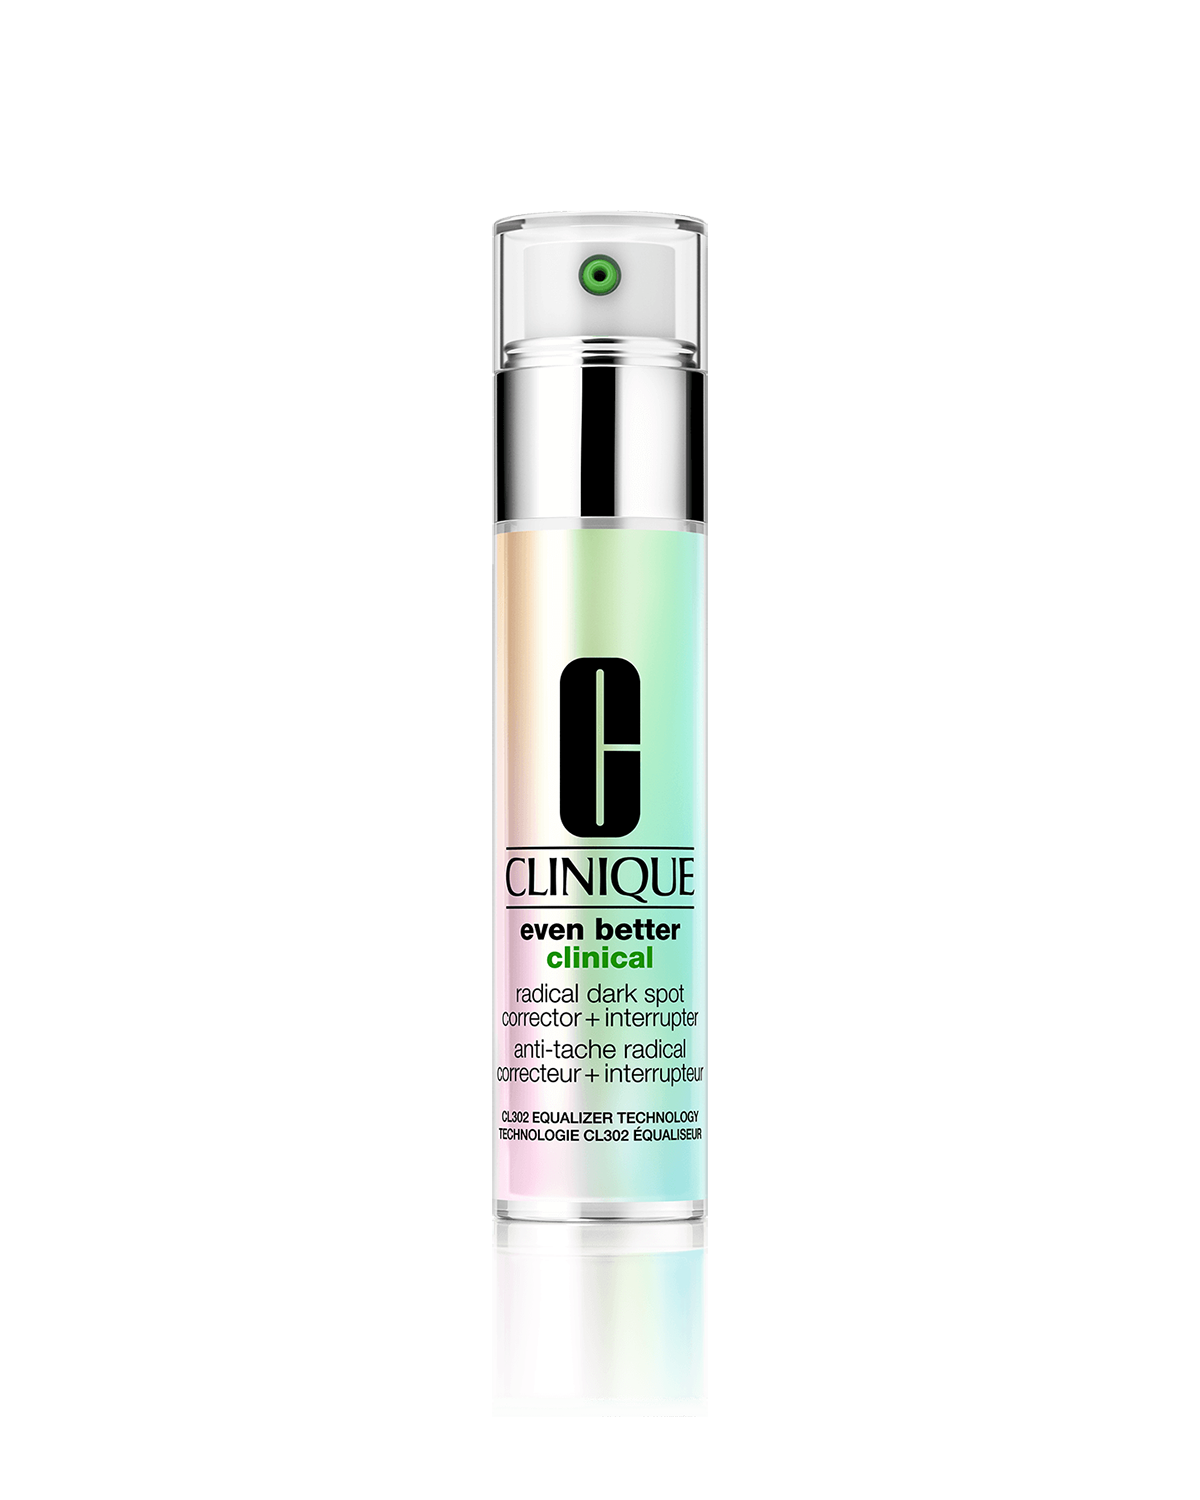 Even Better Clinical™ Radical Dark Spot Corrector + Interrupter